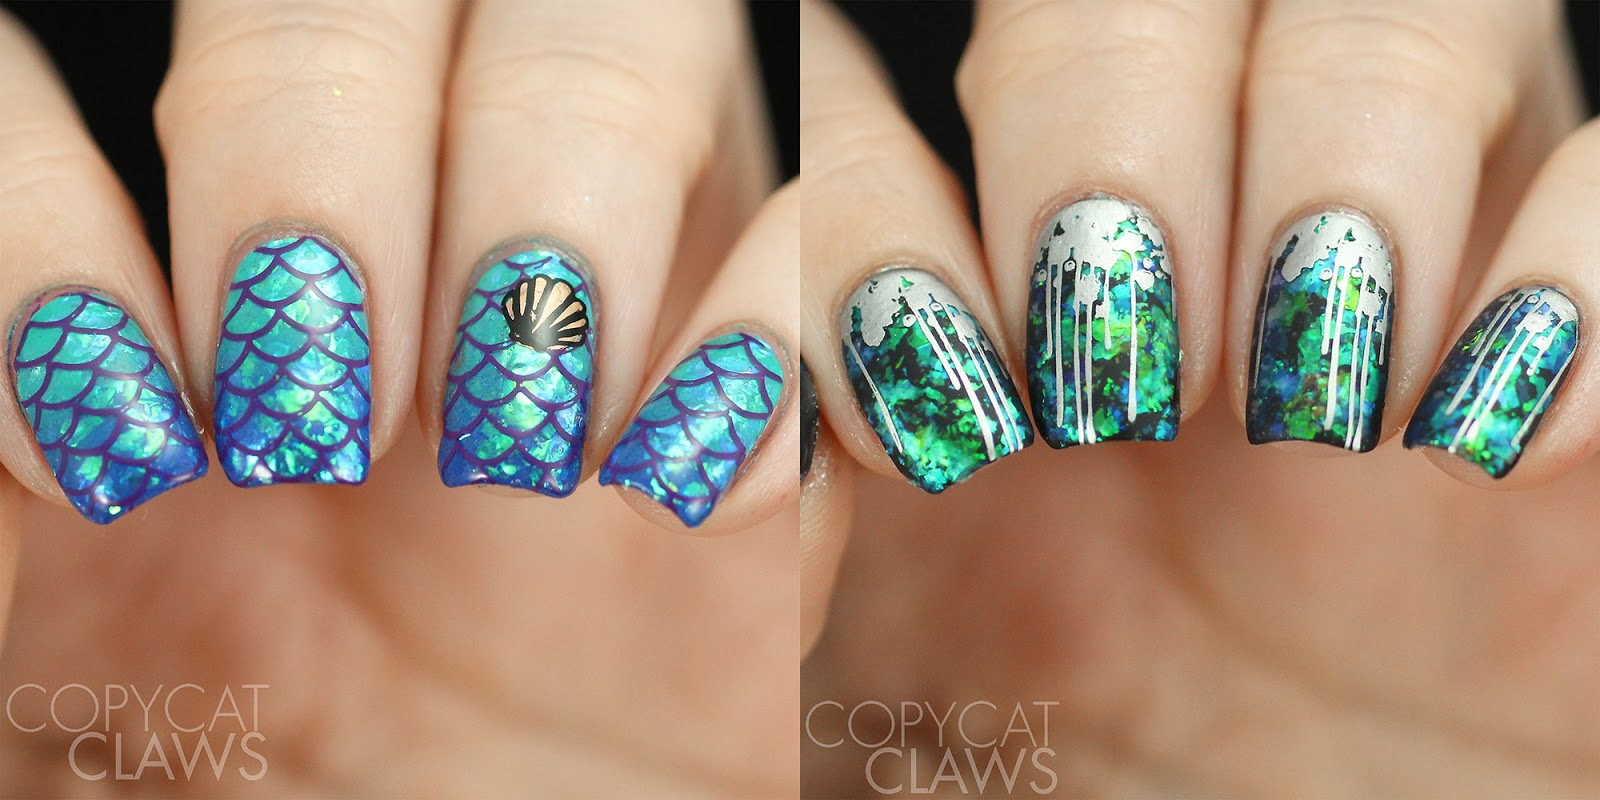 Copycat Claws: Whats Up Nails Mermaid Flakies